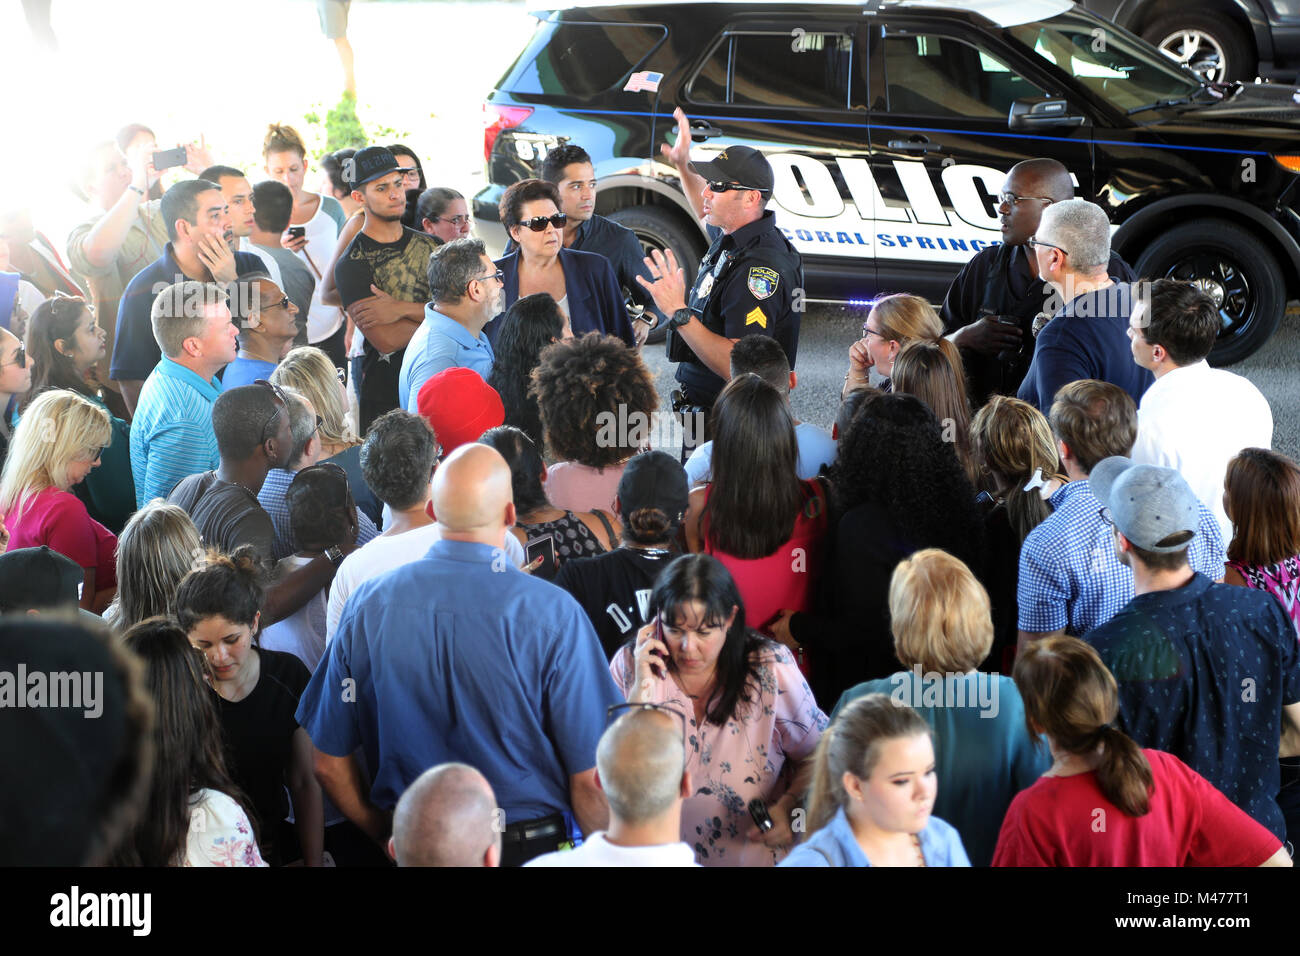 Coral Springs, FL, USA. 14th Feb, 2018. An officer tells parents waiting at Coral Springs Drive and the Sawgrass - Stock Image